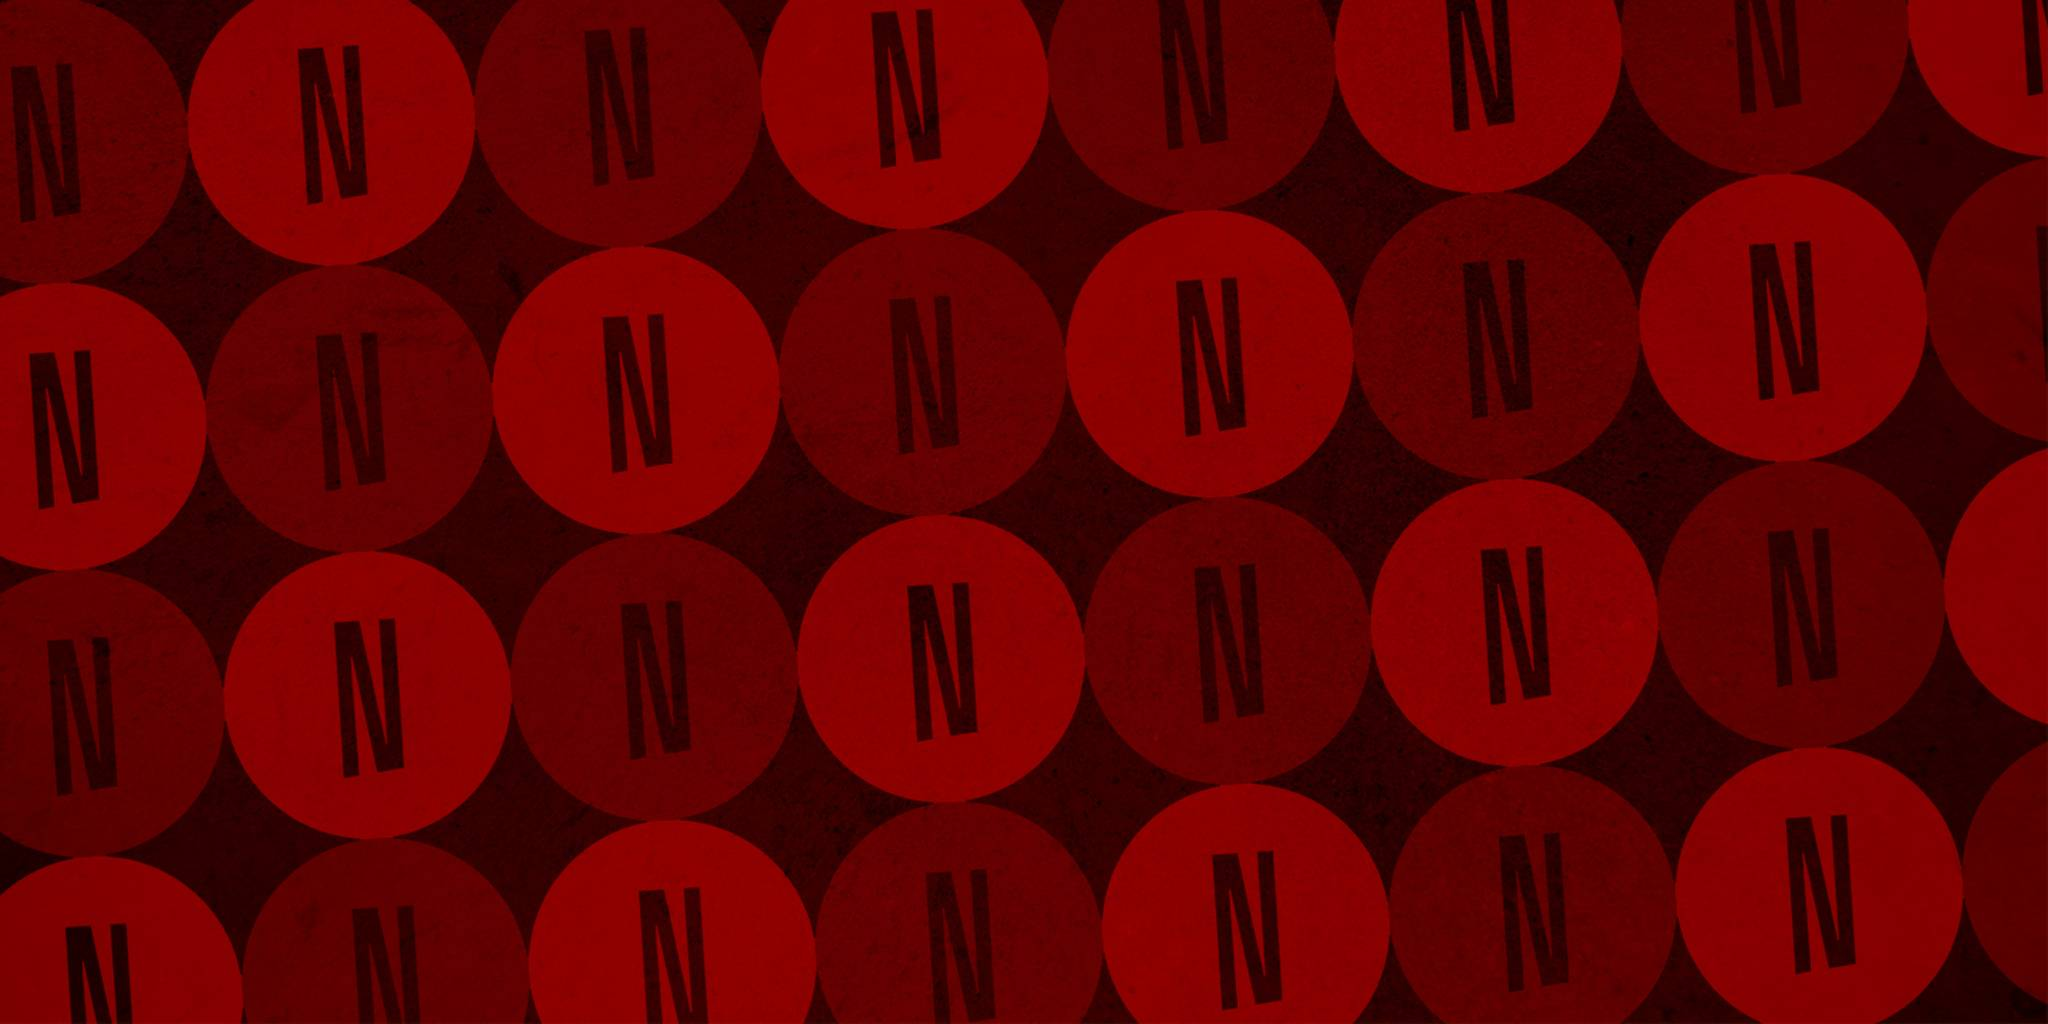 abstract art of the netflix logo